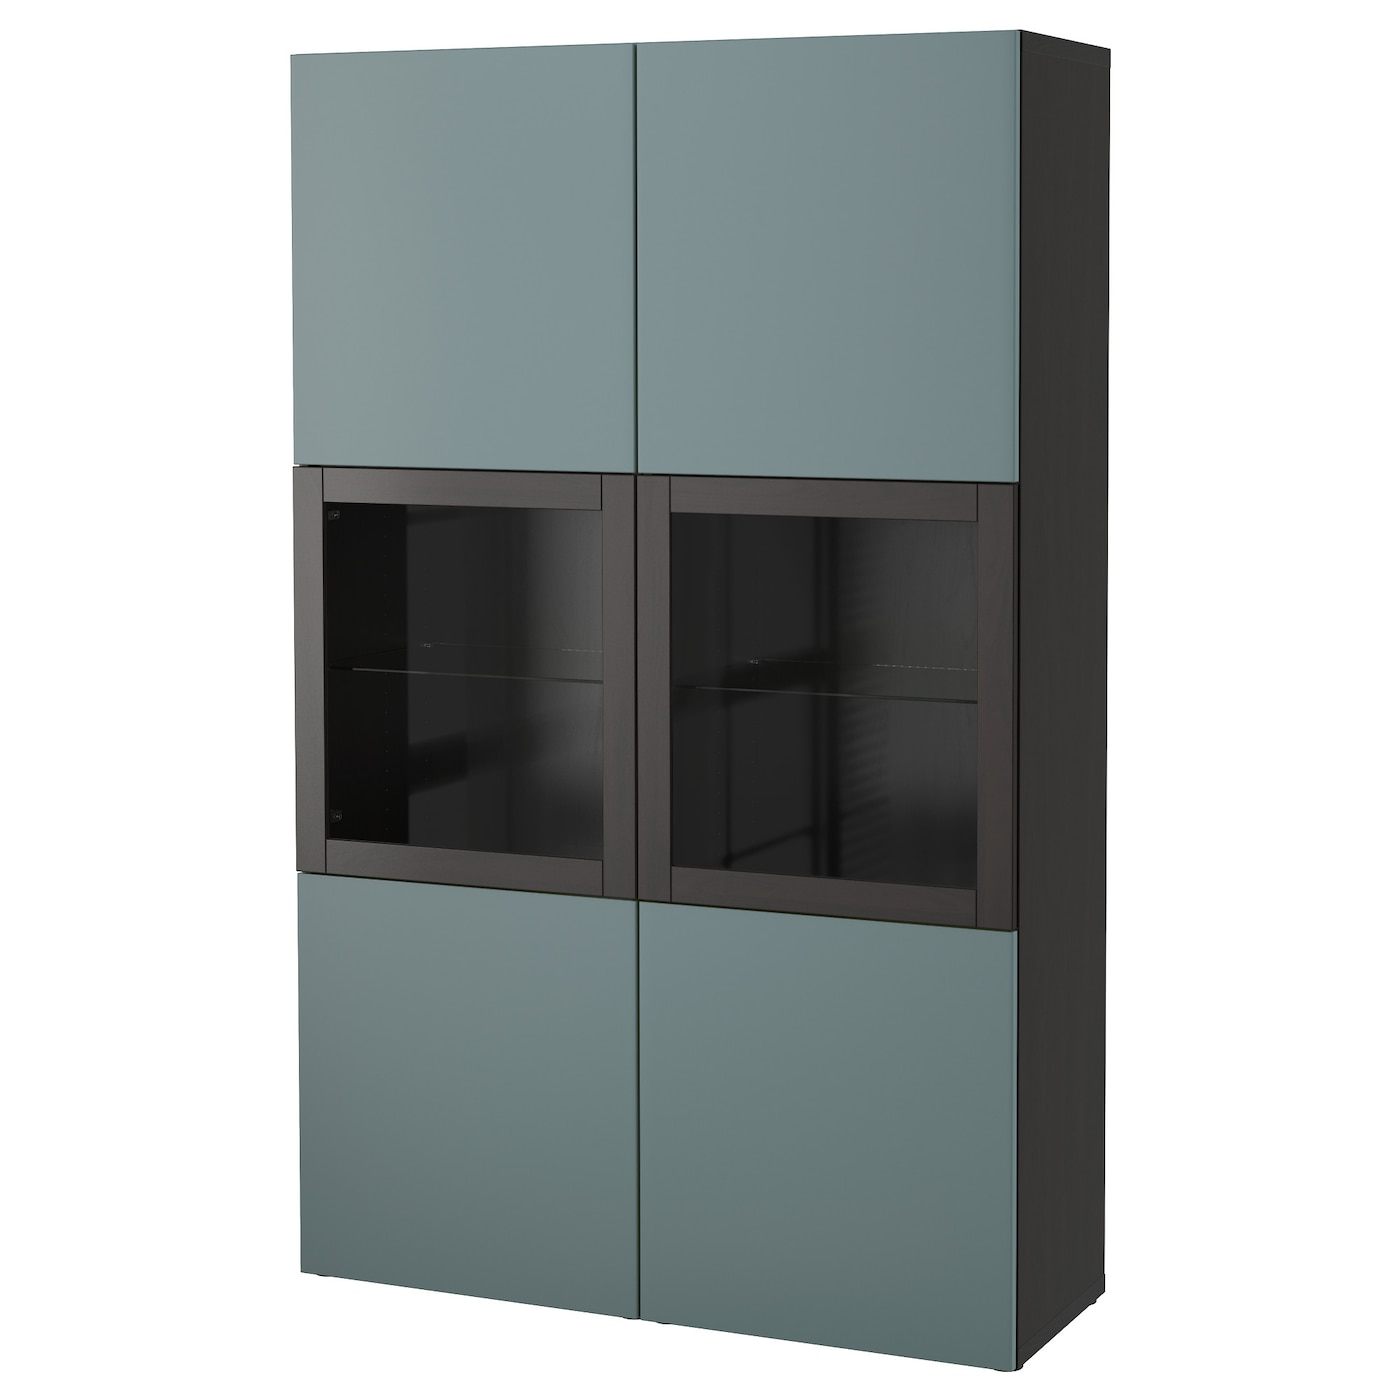 Best Storage Combination W Glass Doors Black Brown Valviken Grey Turquoise Clear Glass